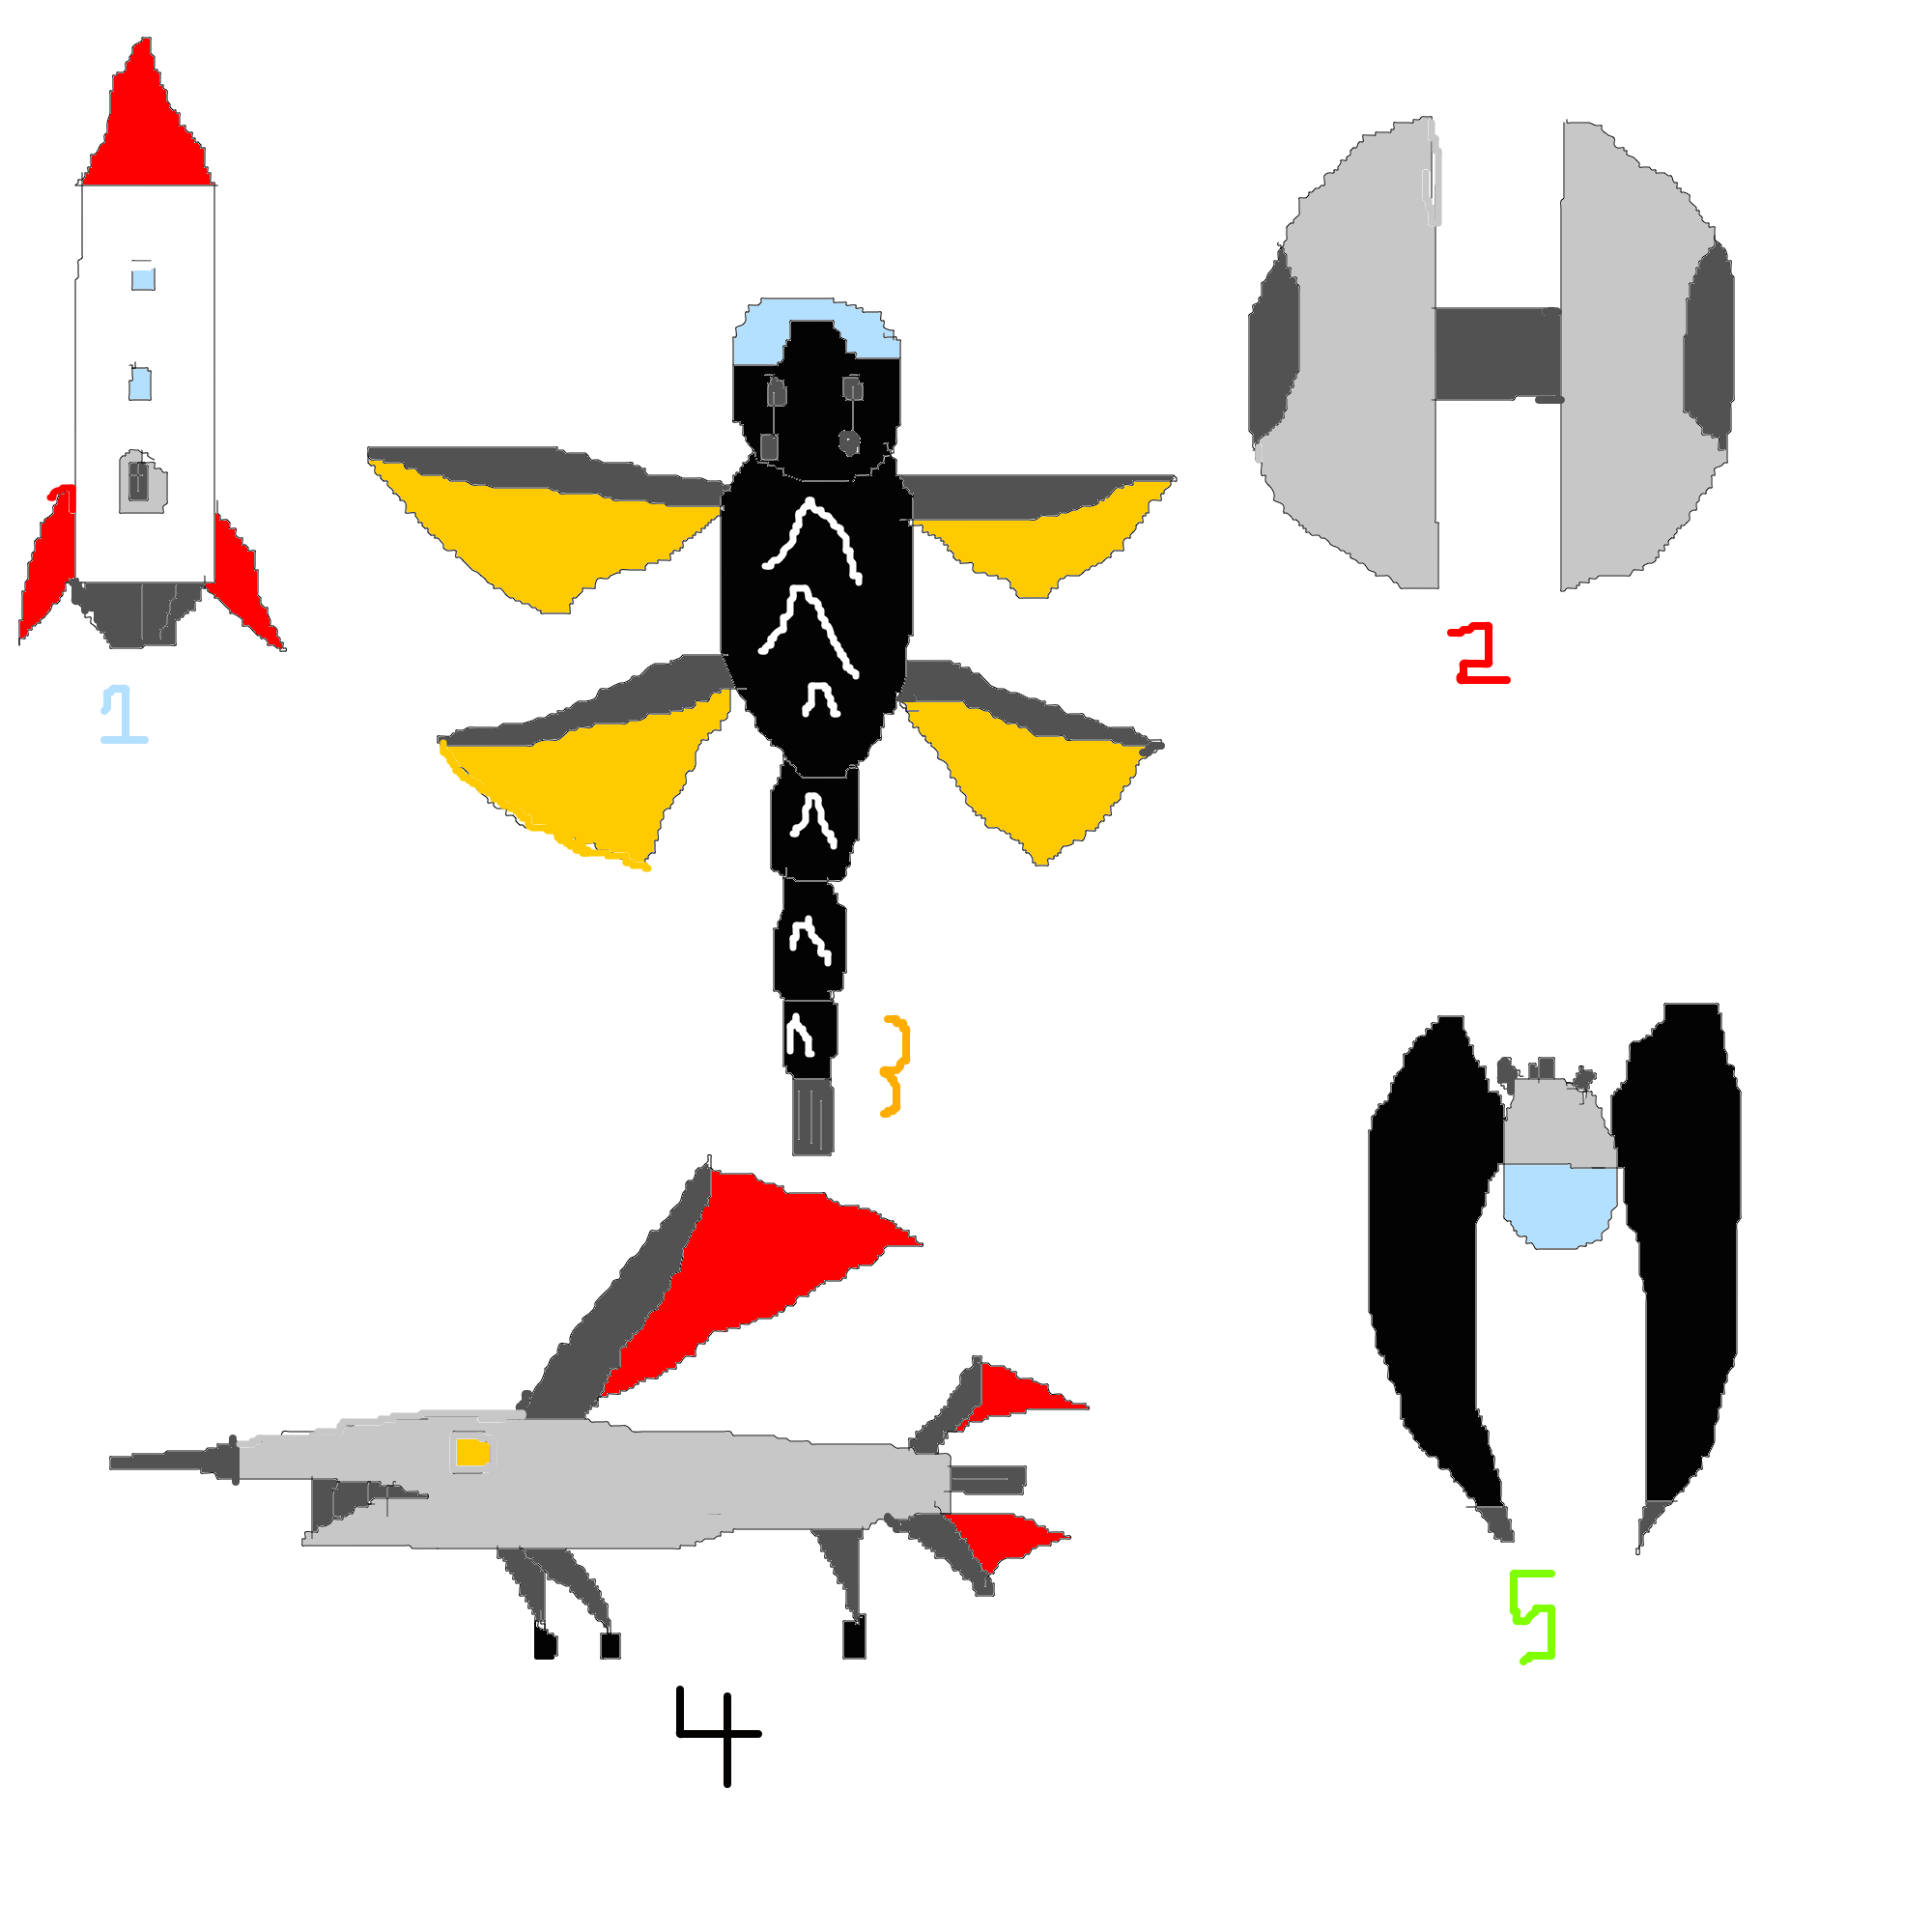 Drawing spaceships mothership. Spaceship designs for the